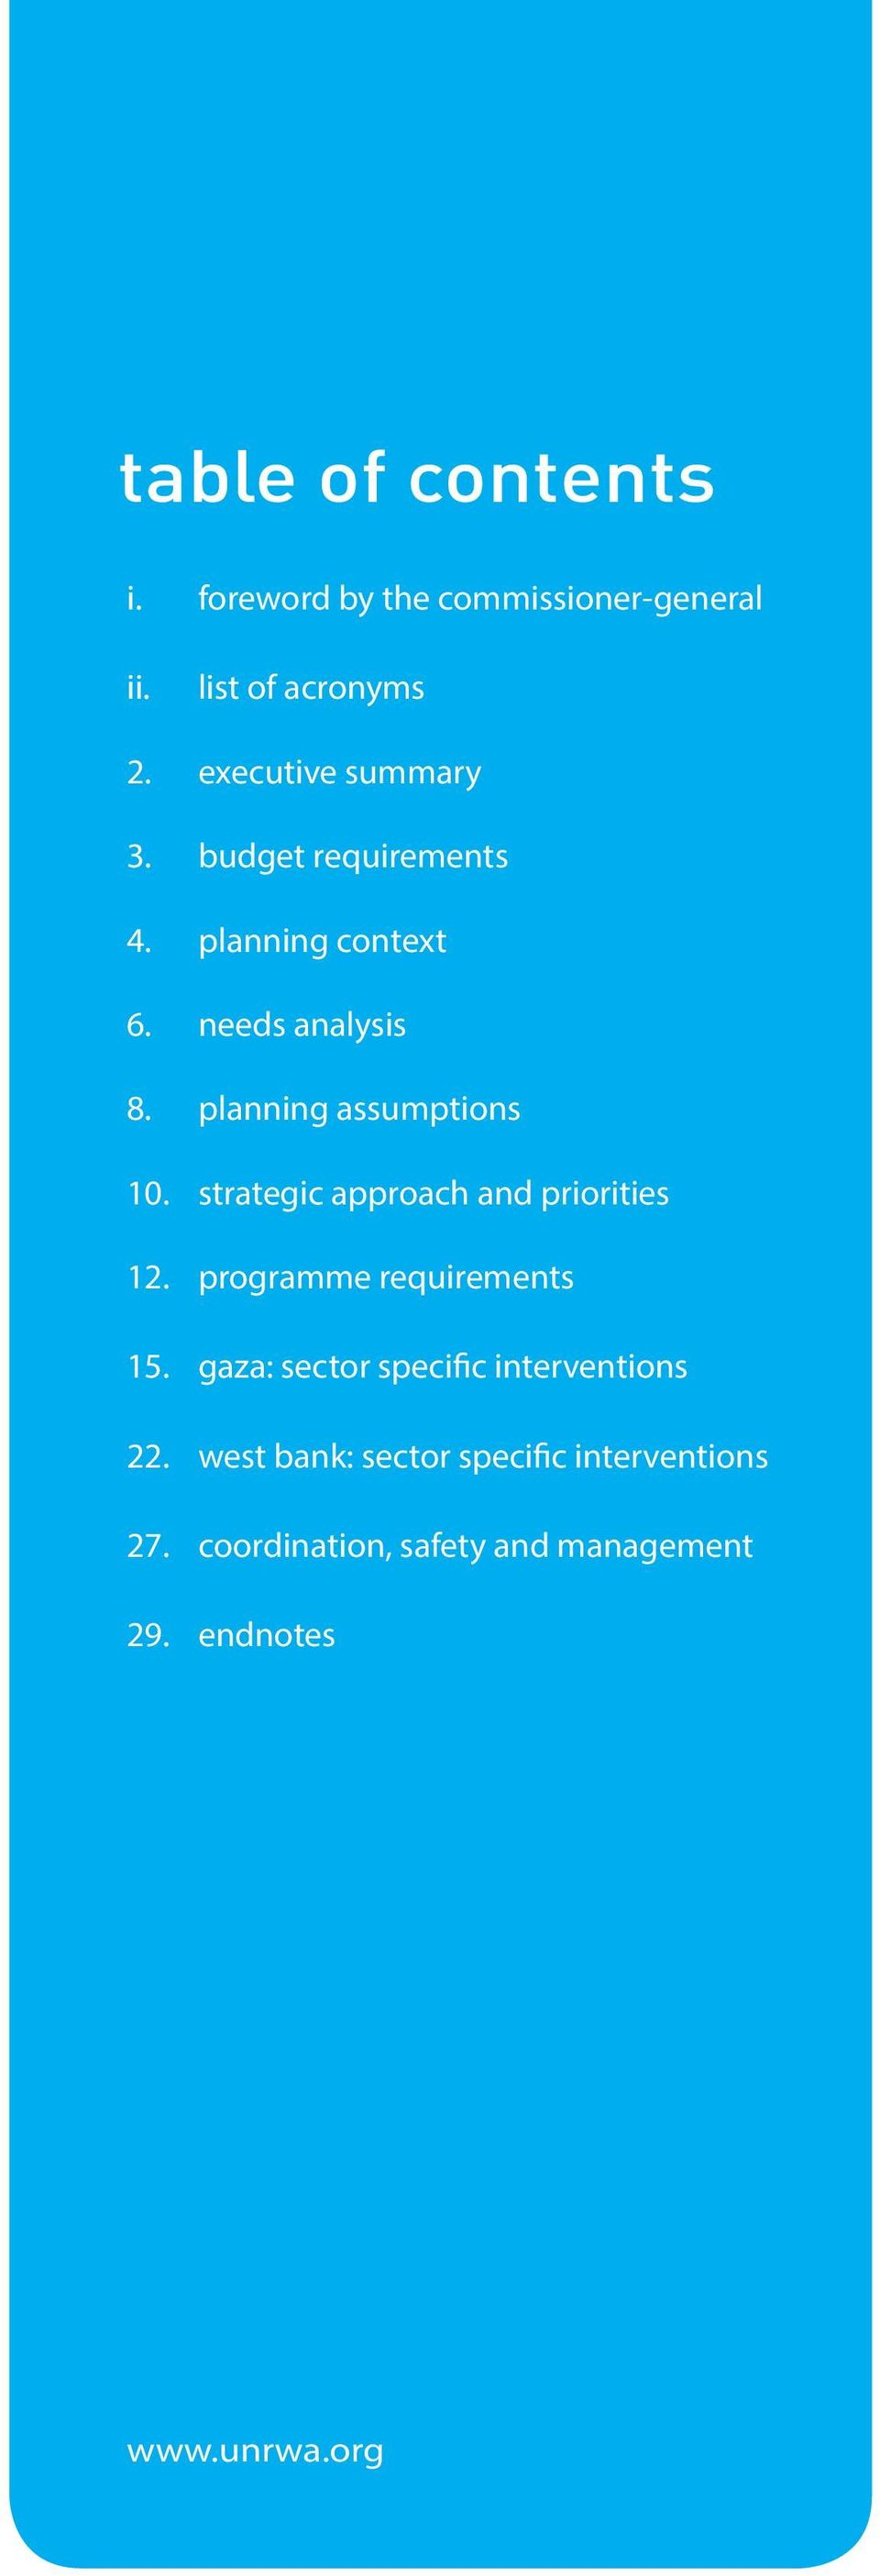 planning assumptions 10. strategic approach and priorities 12. programme requirements 15.